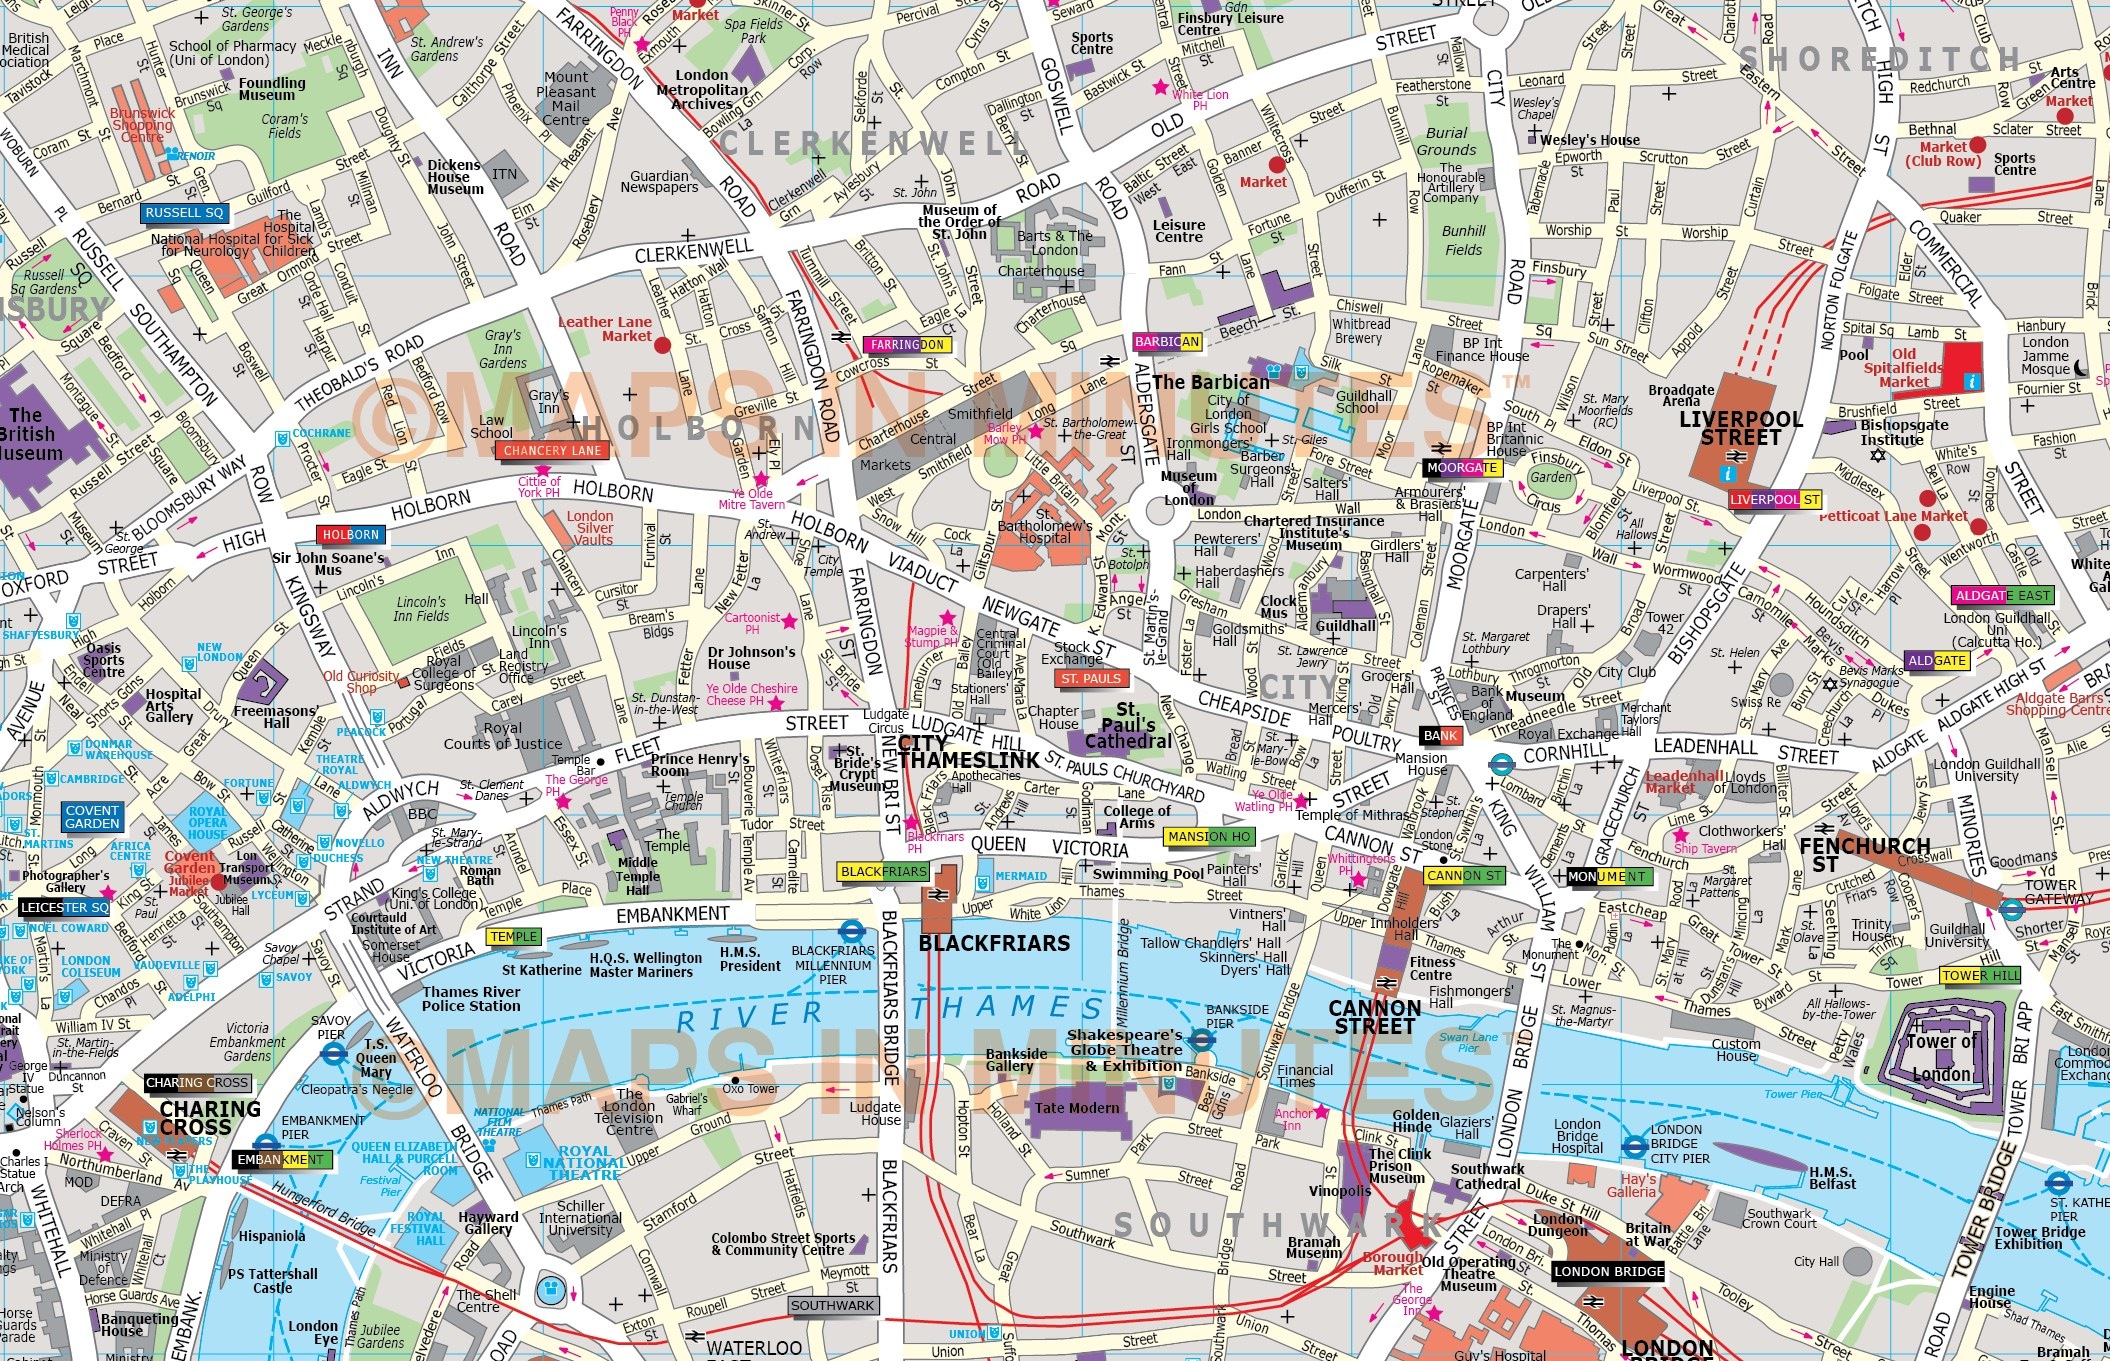 City Of London On Map.Deluxe London City Map In Illustrator Editable Vector Format